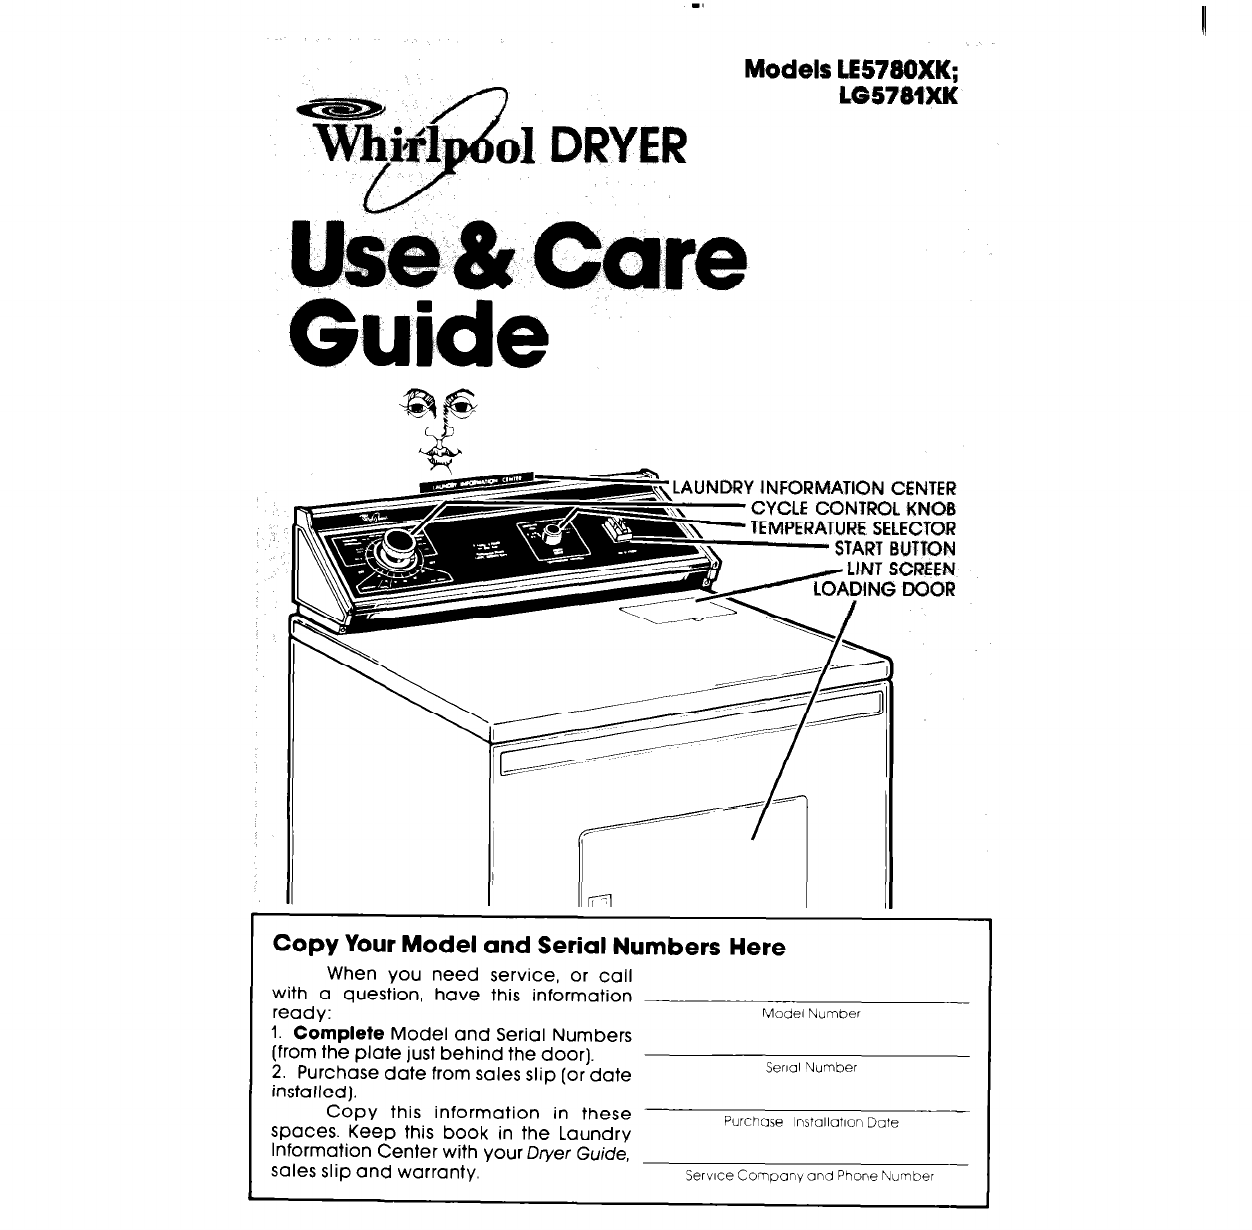 Whirlpool Clothes Dryer Le5780xk User Guide border=